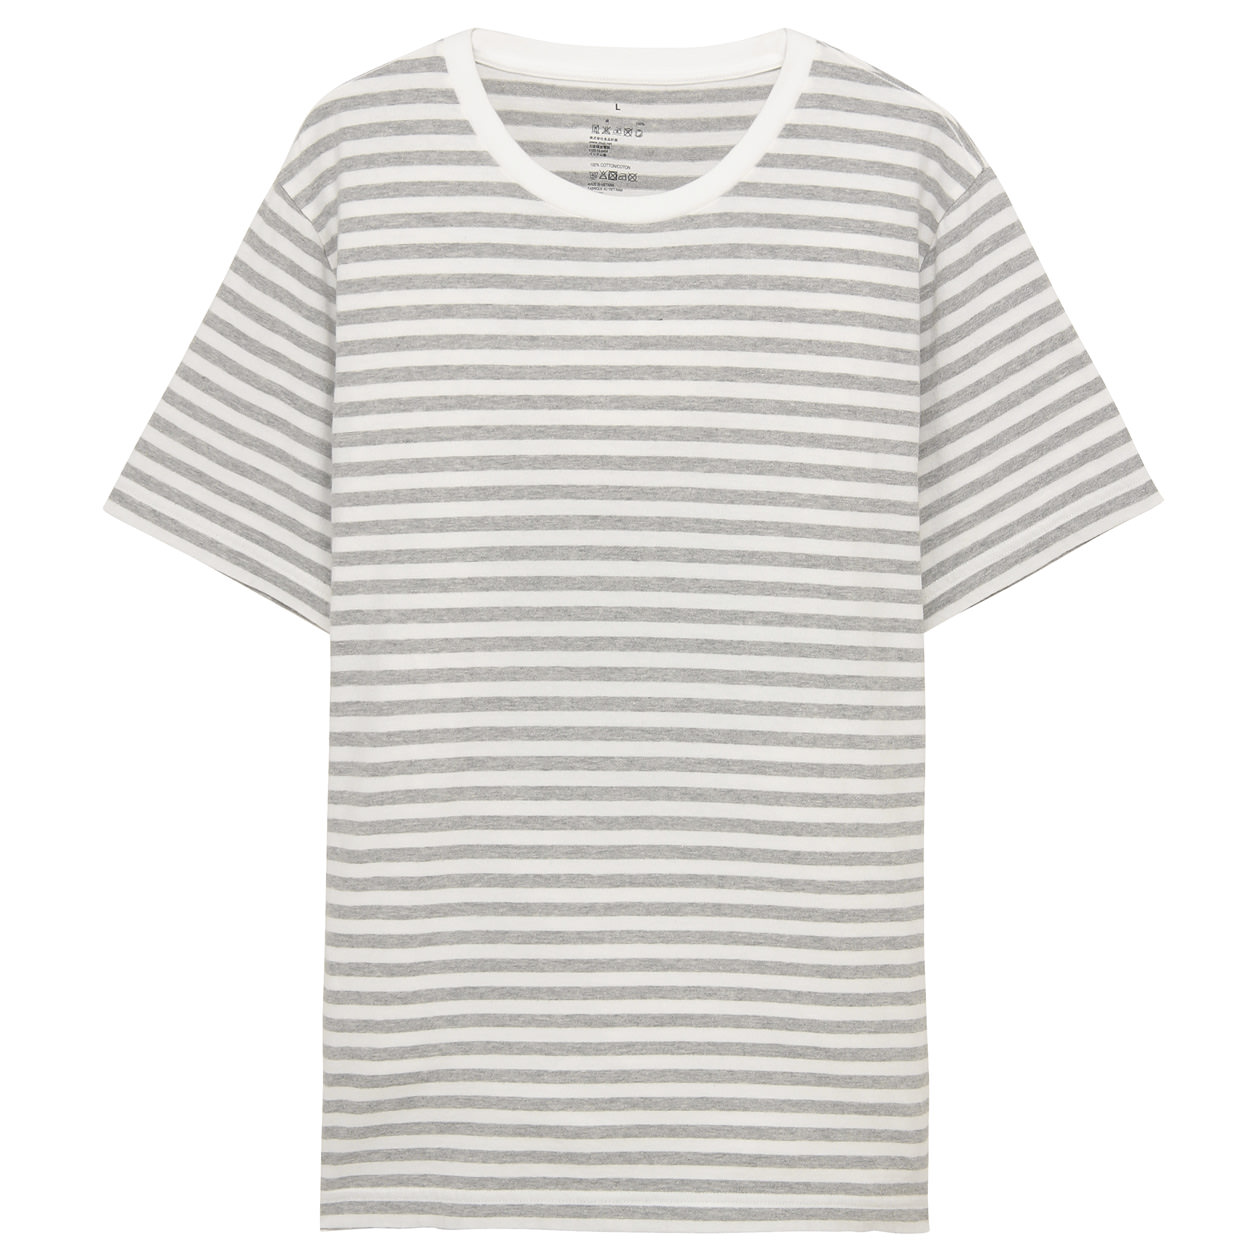 USD 26.71  Muji men s cotton striped T-shirt - Wholesale from China ... 4264bcc38